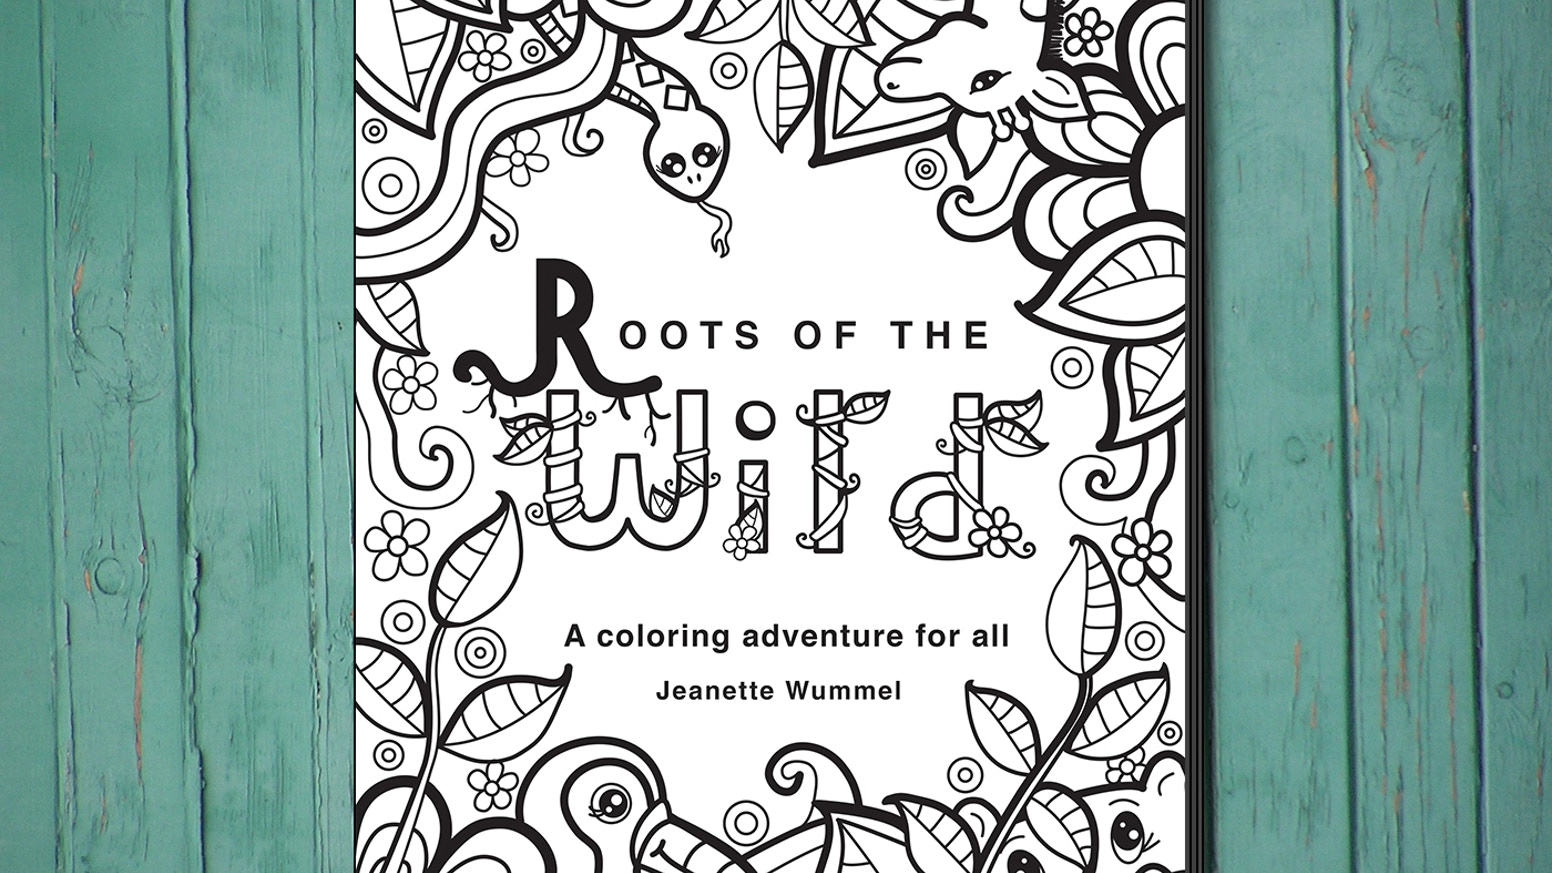 Roots of the Wild: A Coloring Book by Jeanette Wummel — Kickstarter